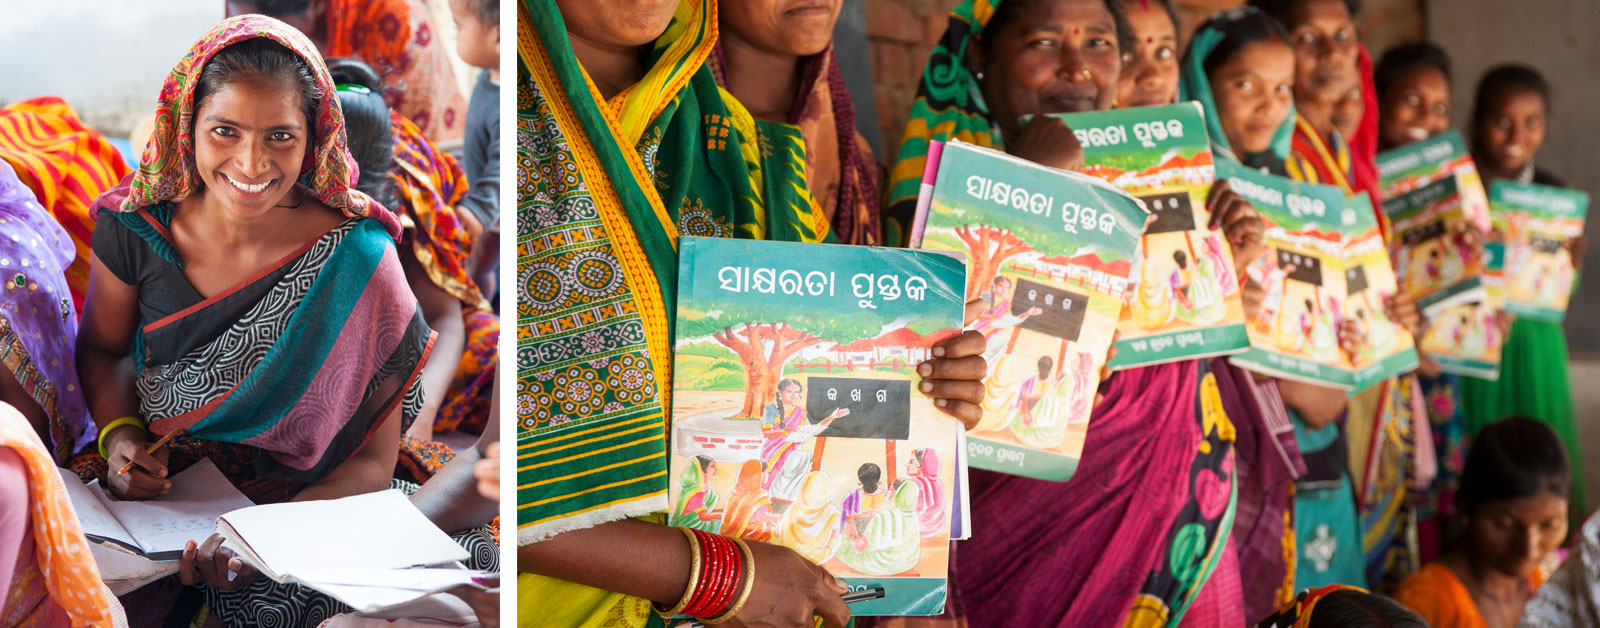 Women, learning to read for the first time, hold literacy books.